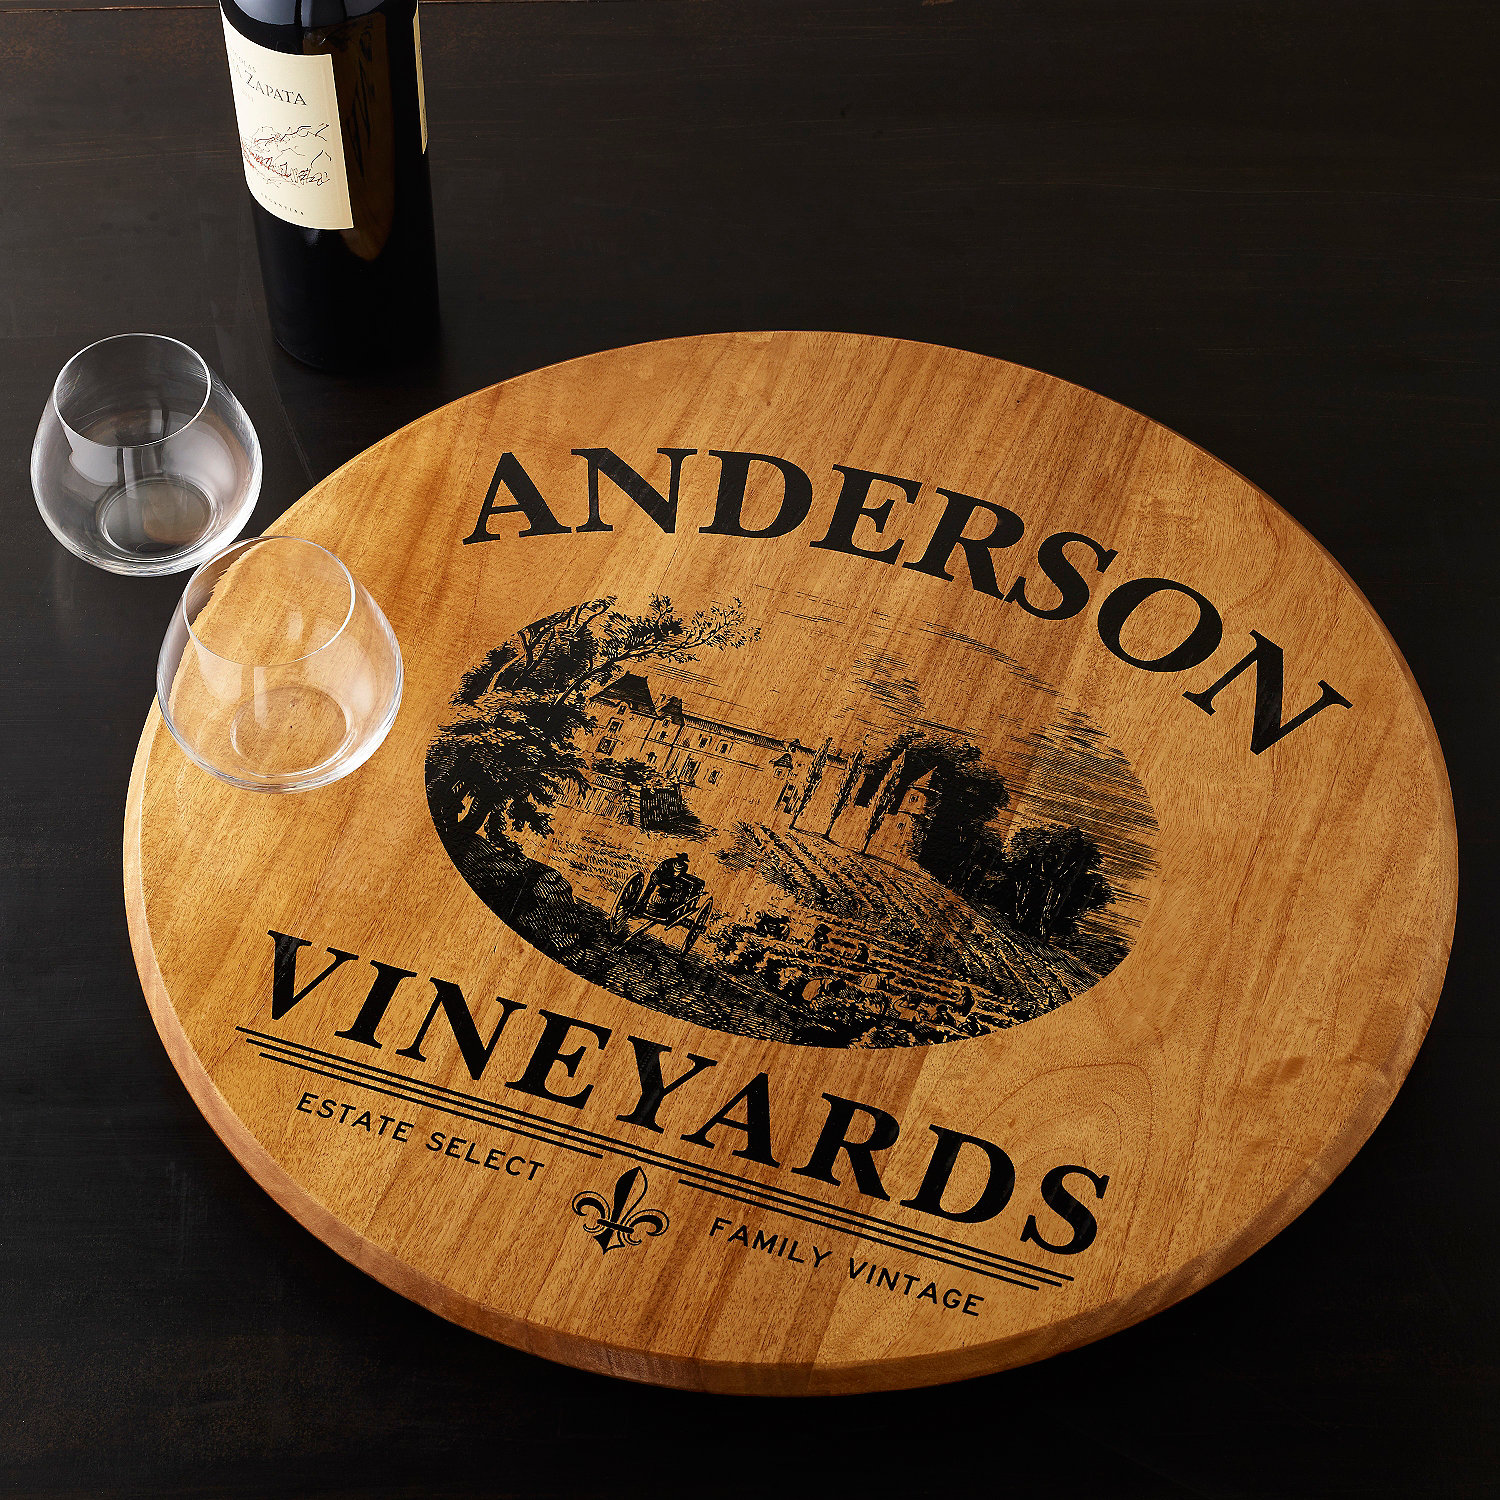 Marvellous wine barrel lazy susan for furniture accessories ideas with personalized wine barrel lazy susan